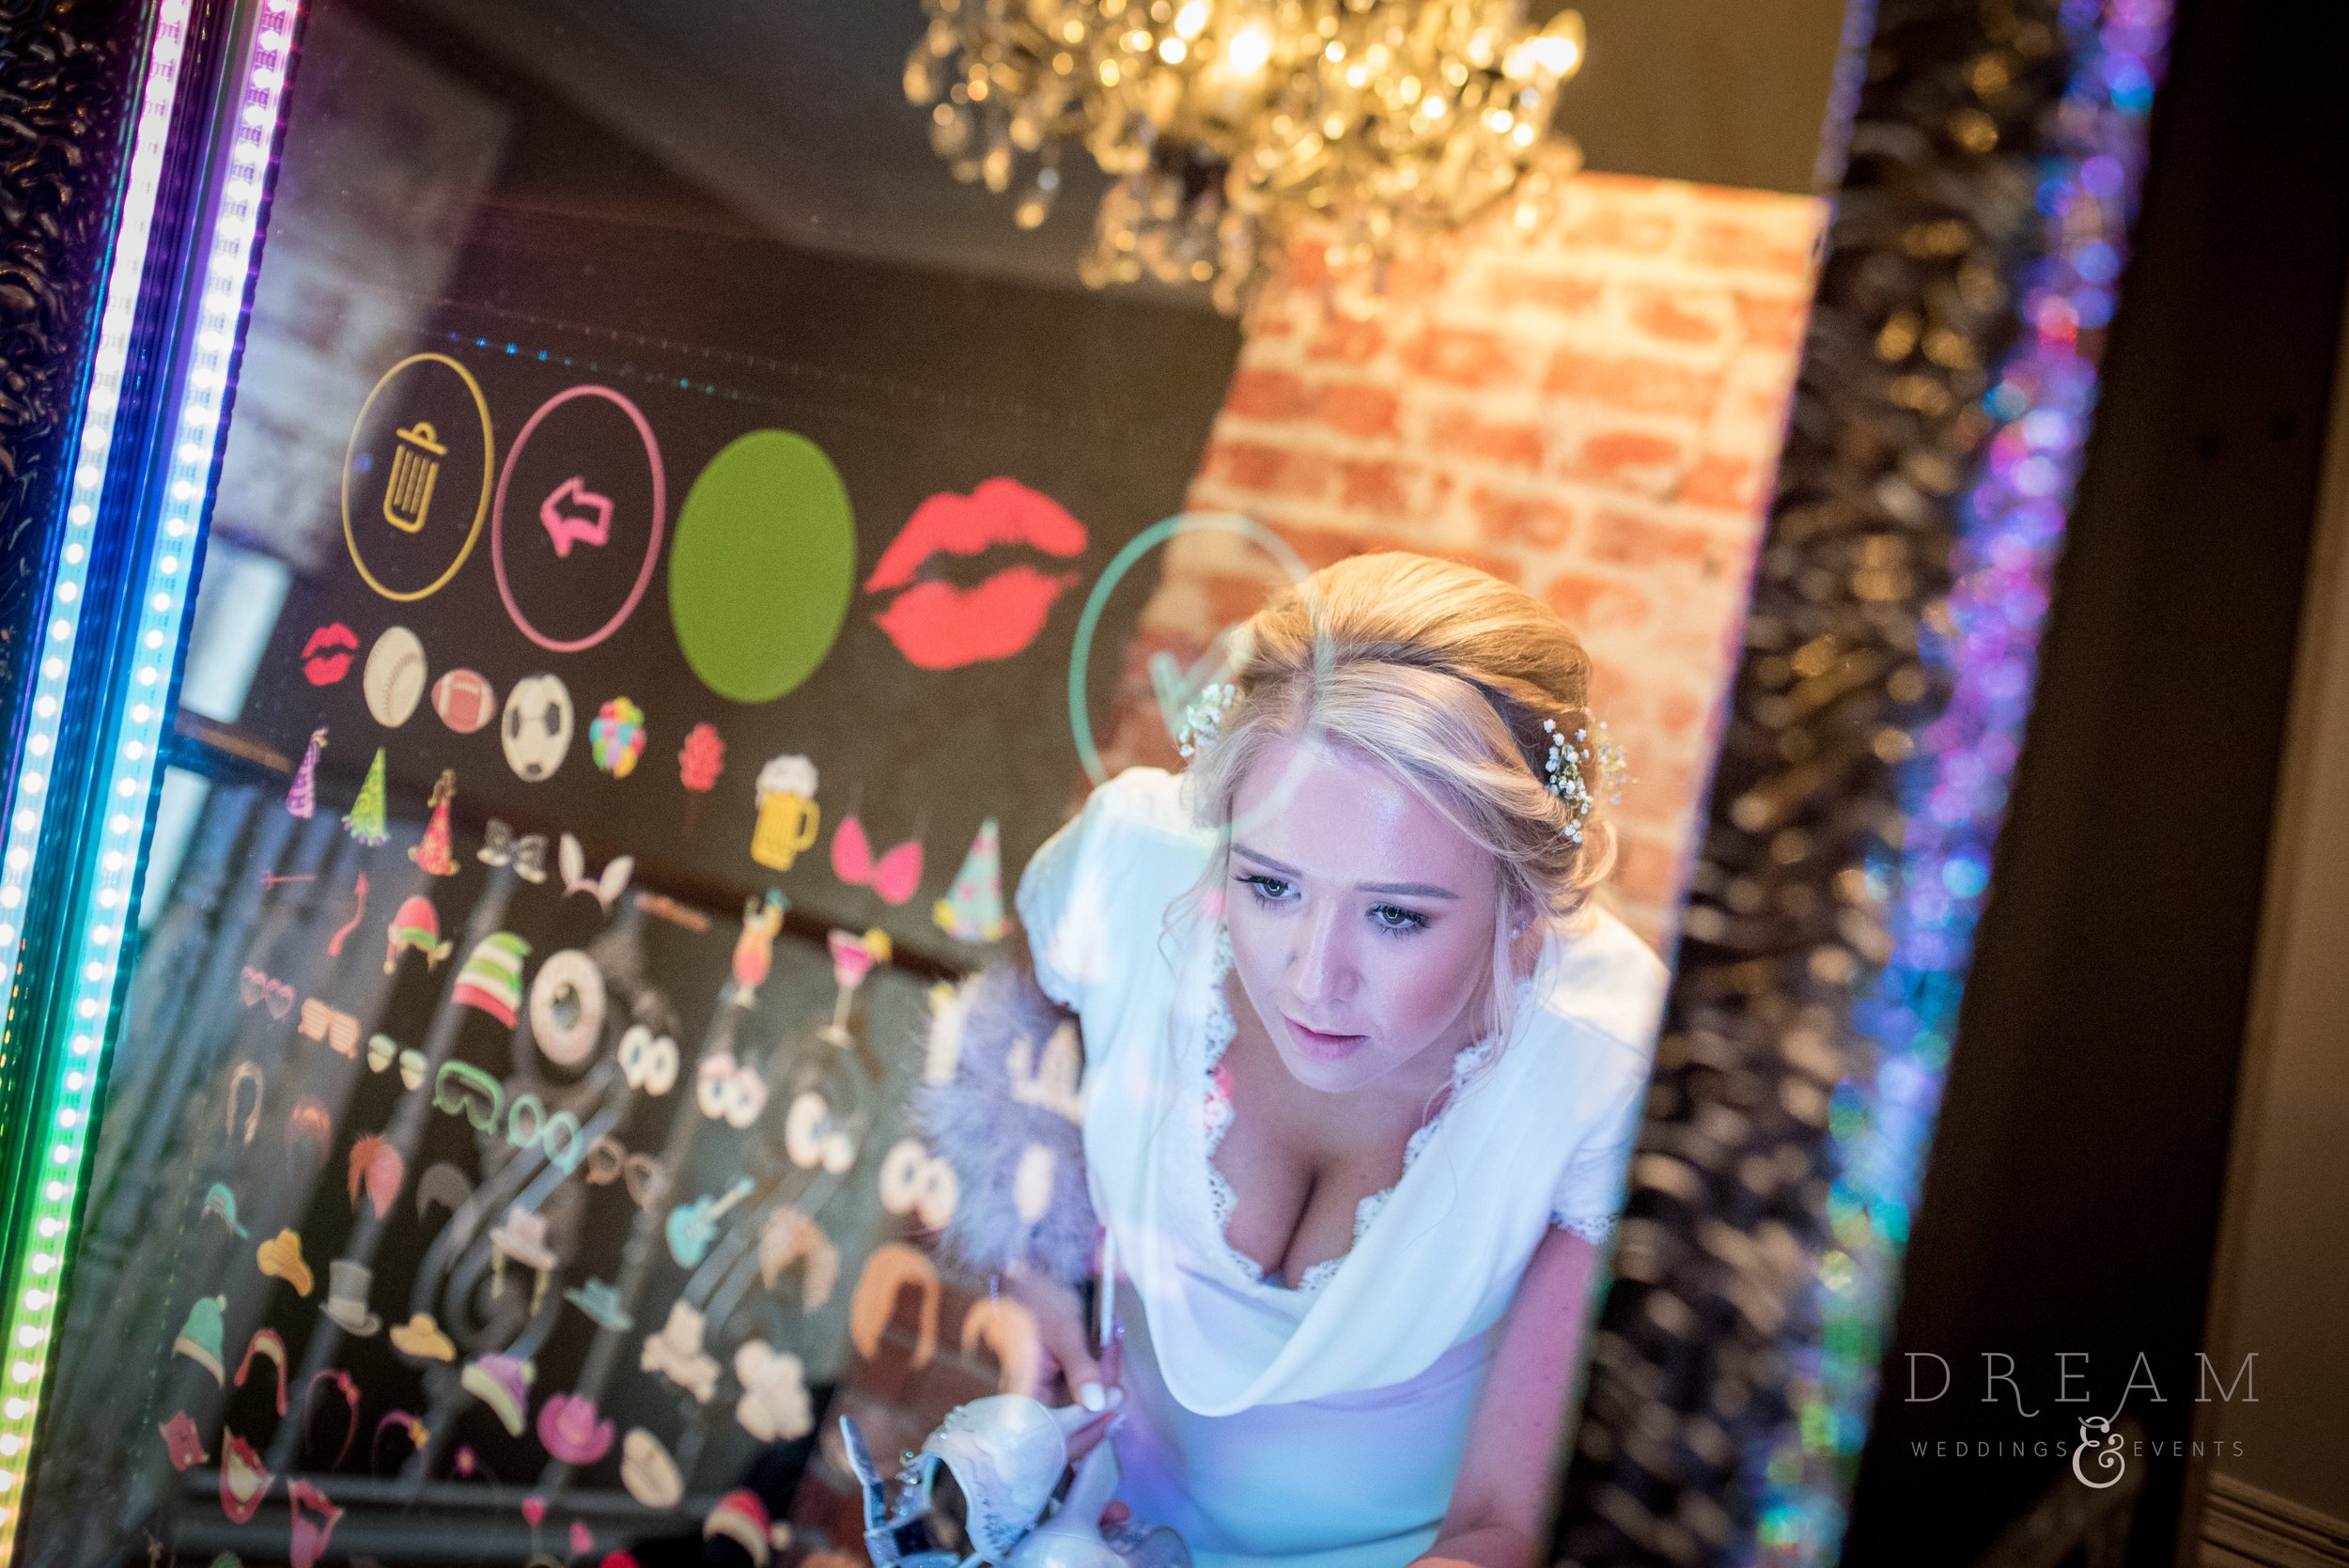 Magic Selfie Mirror Photo Booth Hire Nottingham, Derby, Leicester, East Midlands.